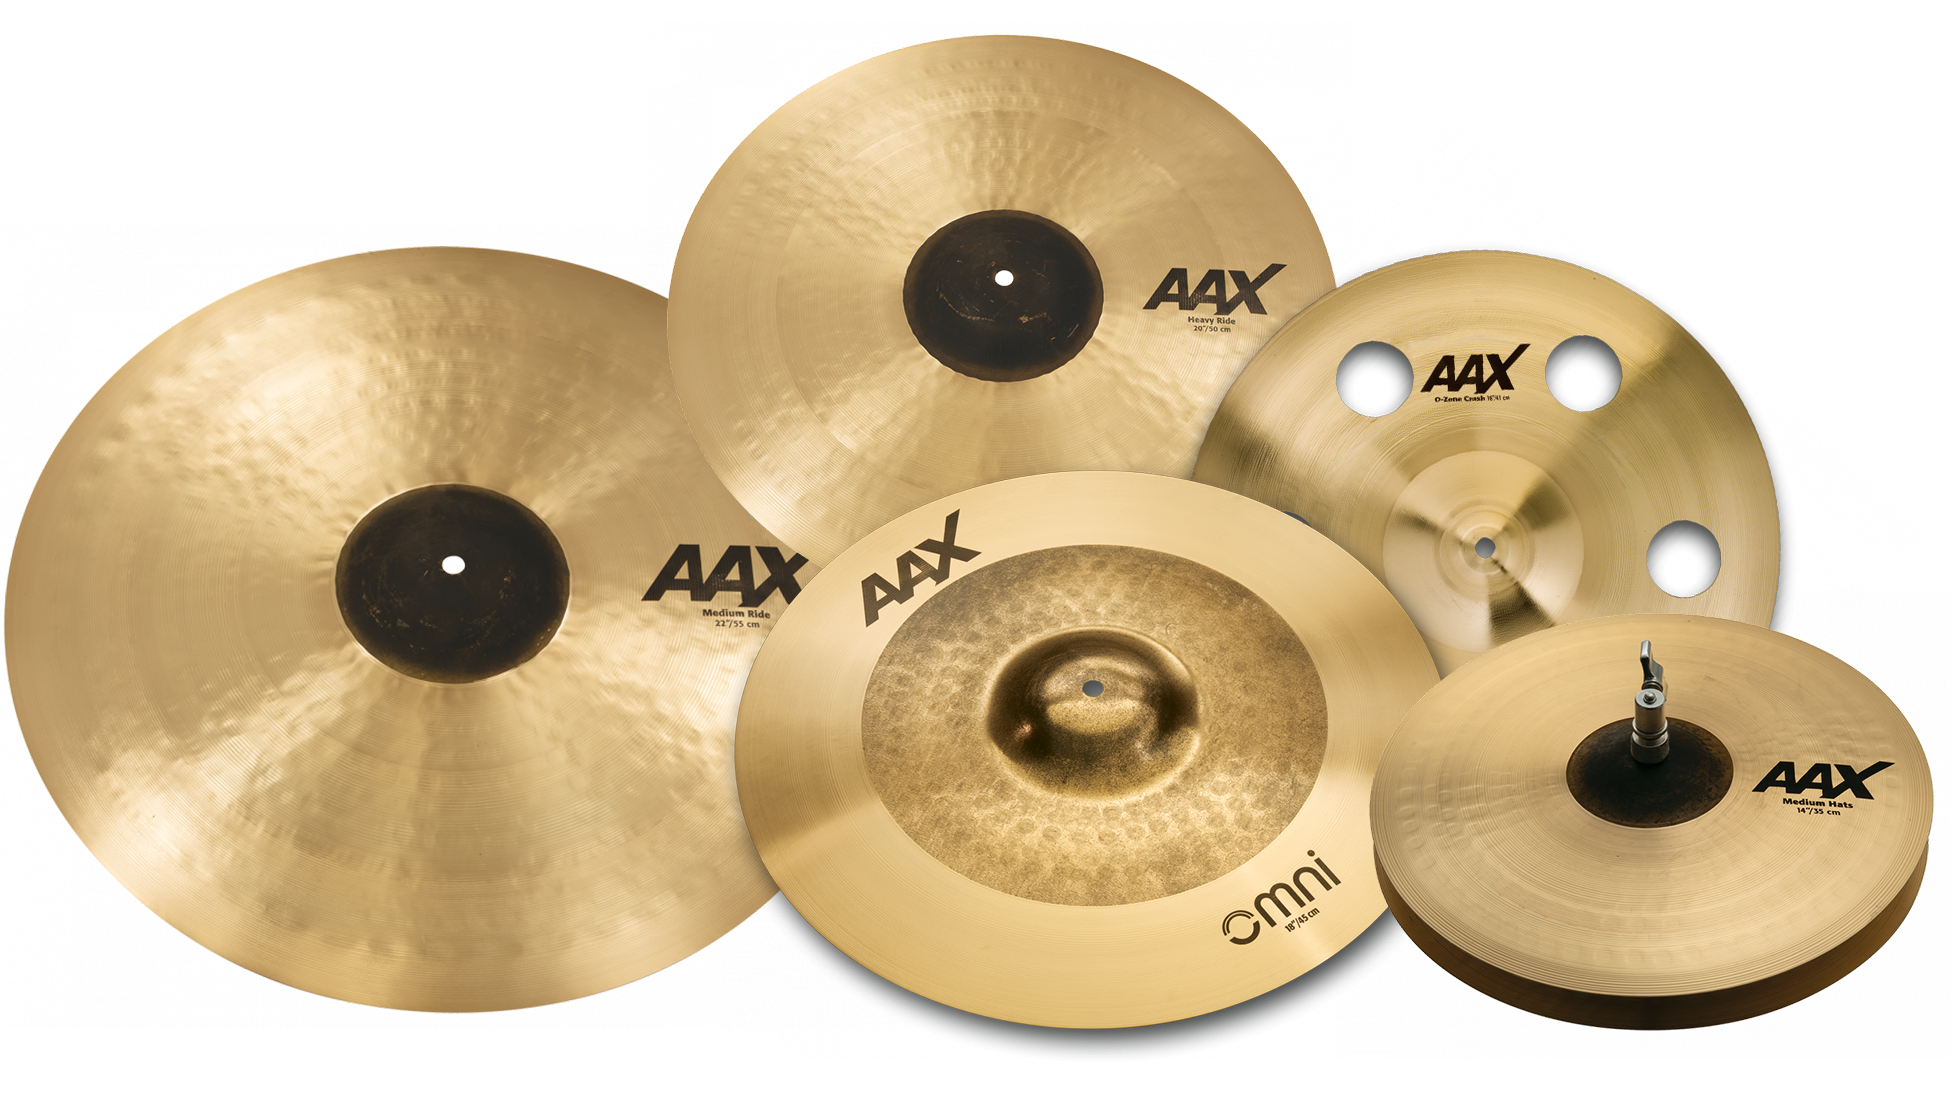 Sabian AAX Family Photo